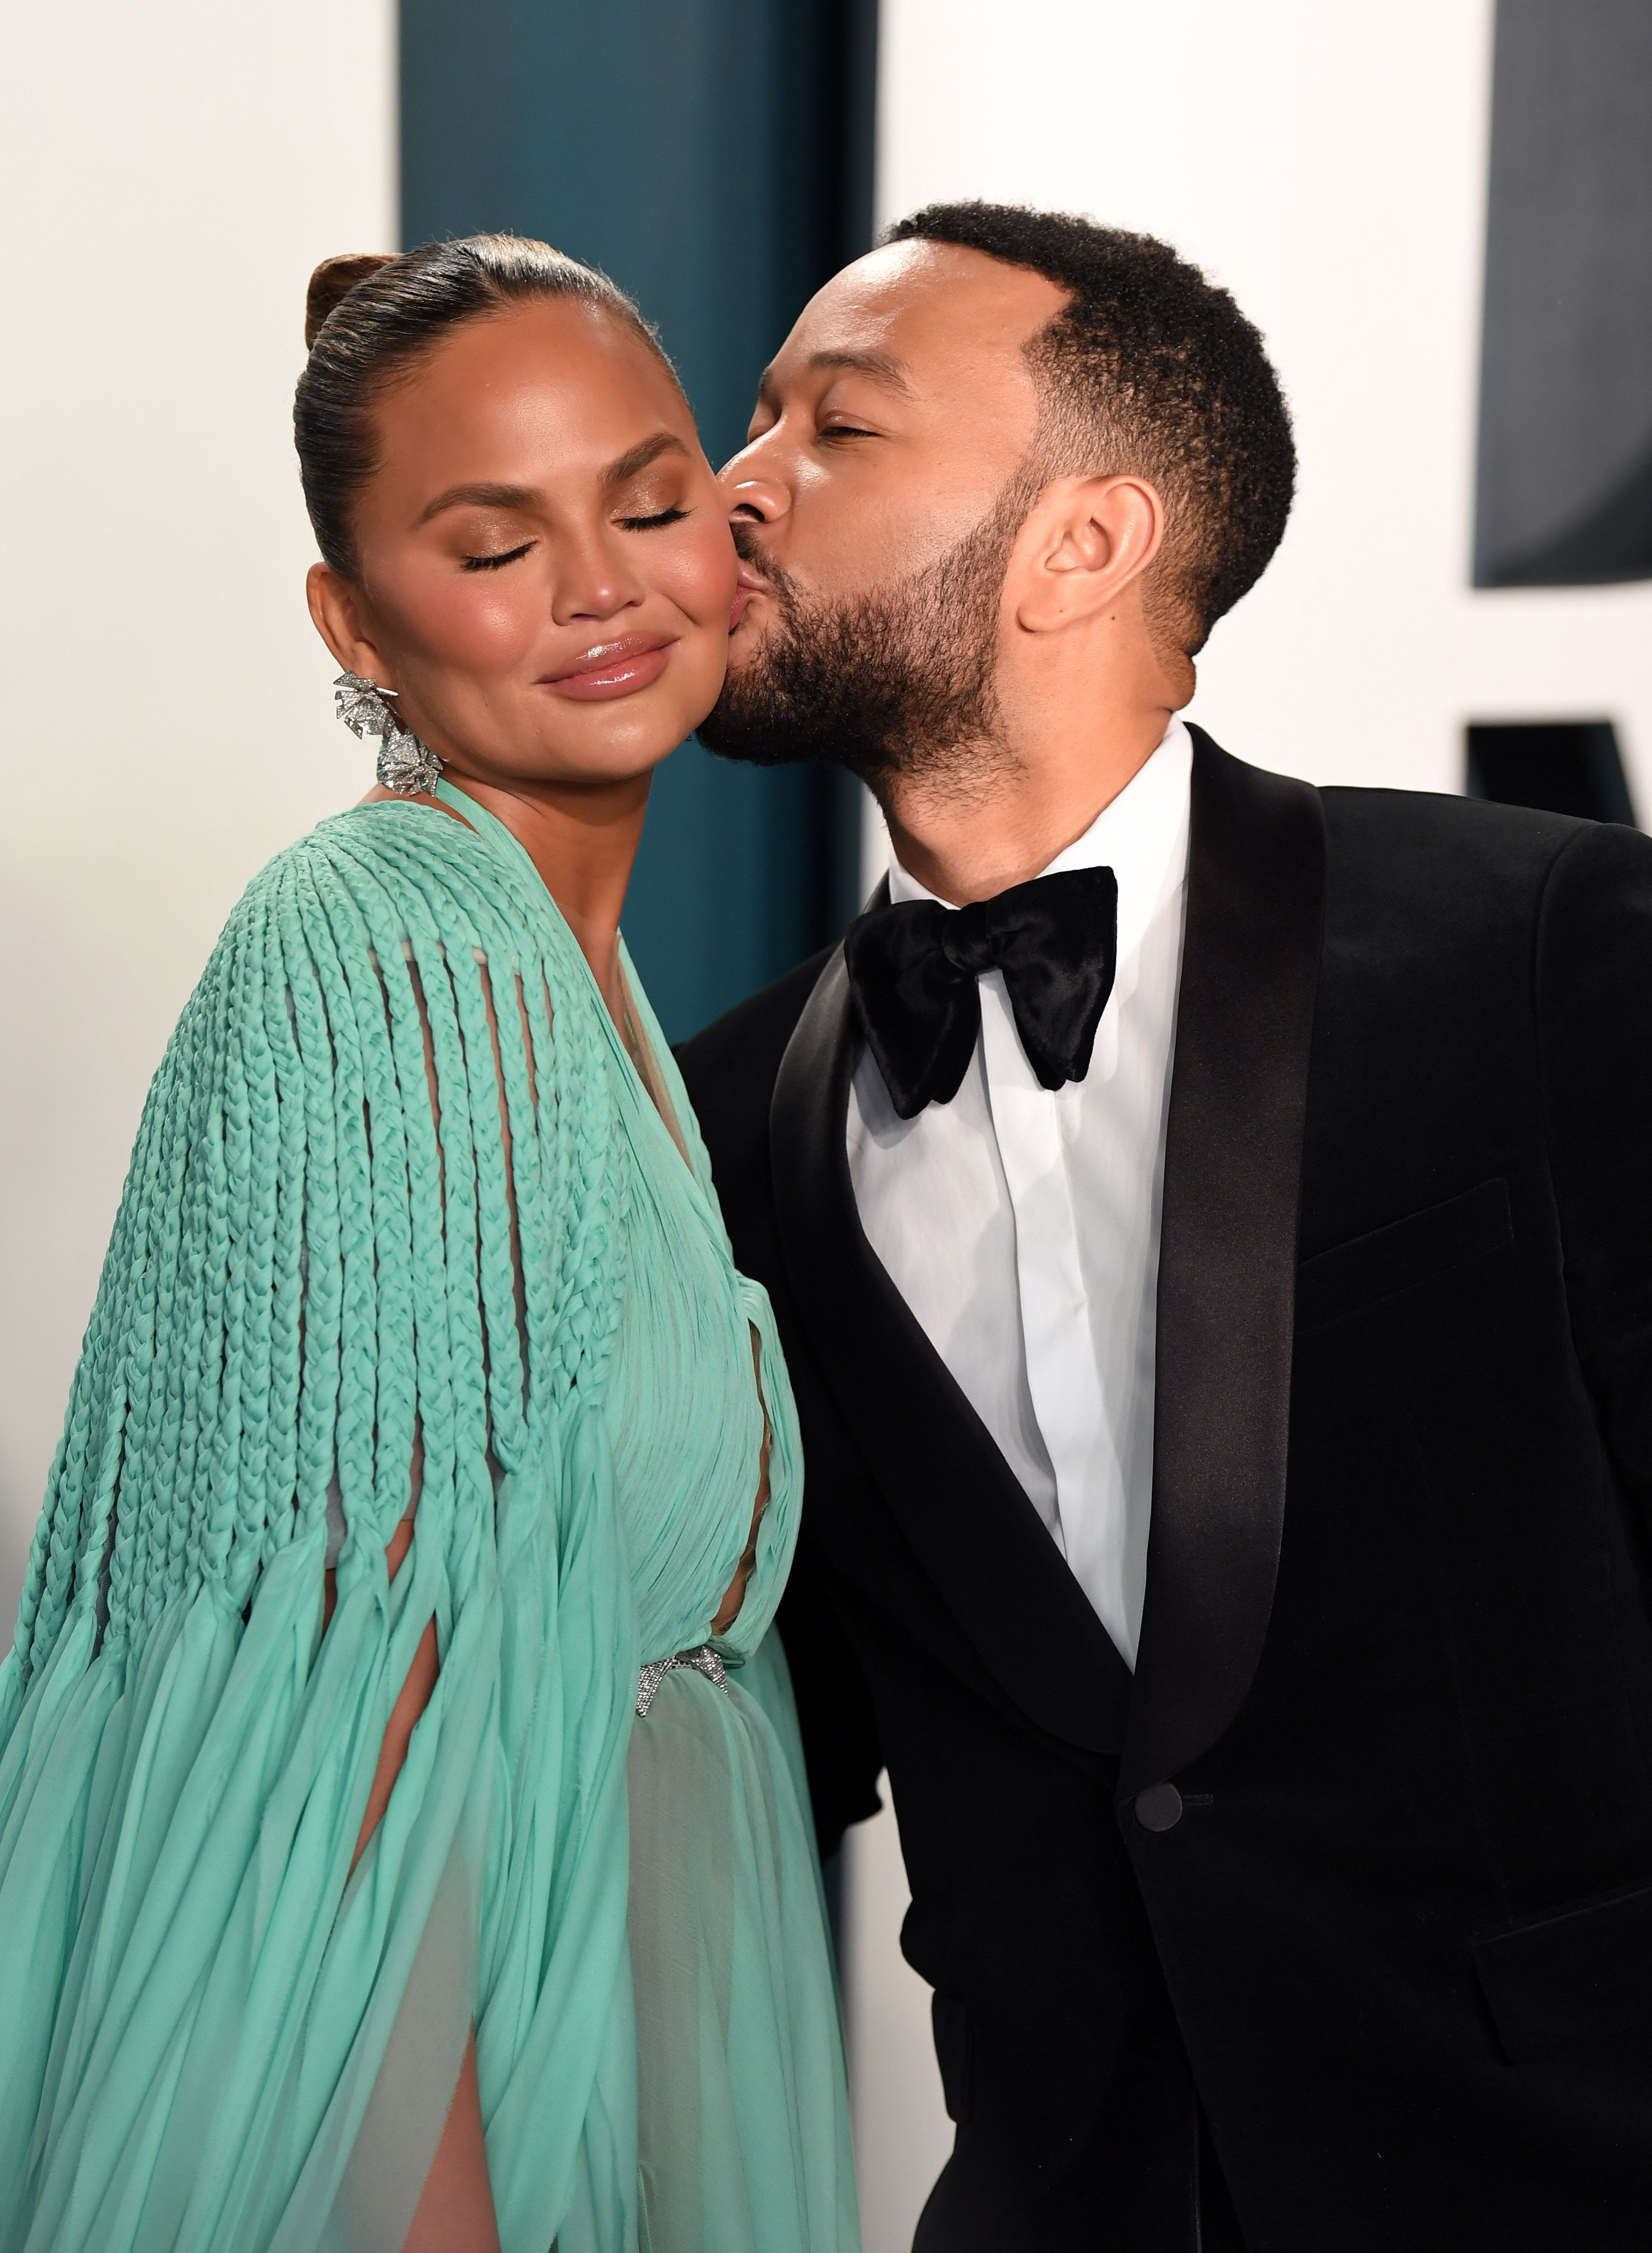 Here's What Chrissy Teigen and John Legend Did on Their Extravagant Valentine's Day Date